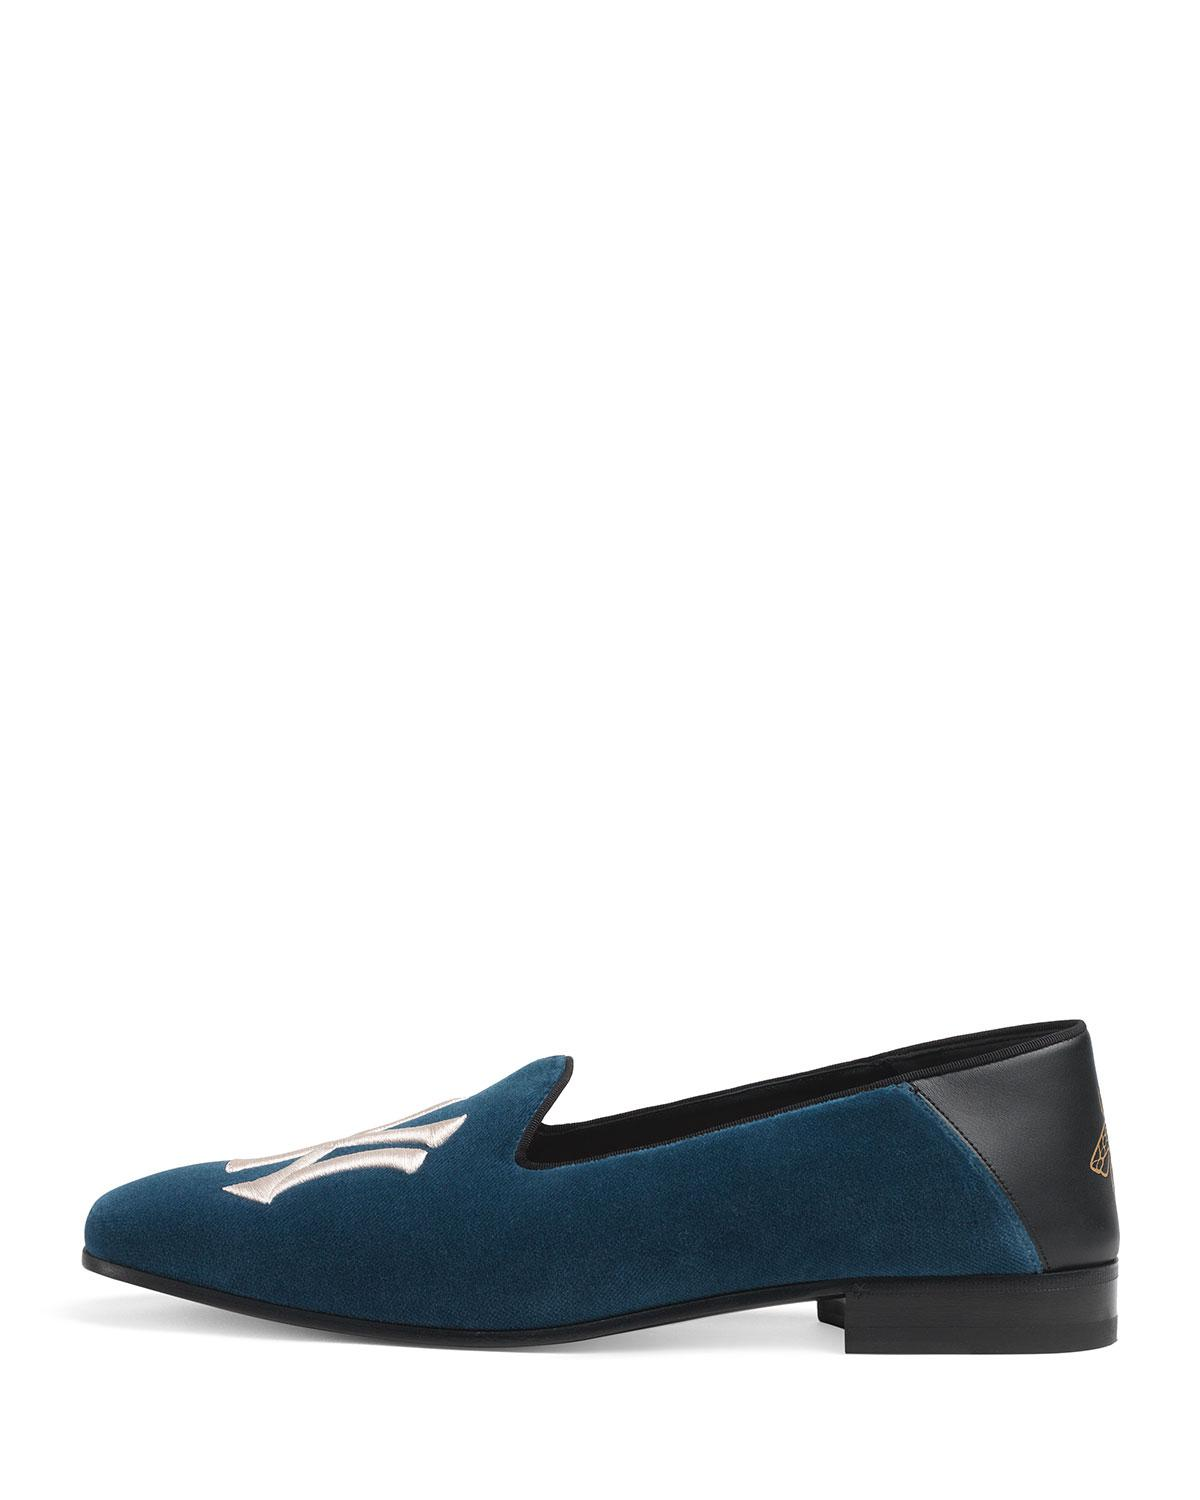 9a5573926d5 Lyst - Gucci Men s Fold-down Velvet Loafers With Ny Yankeestm Patch in Blue  for Men